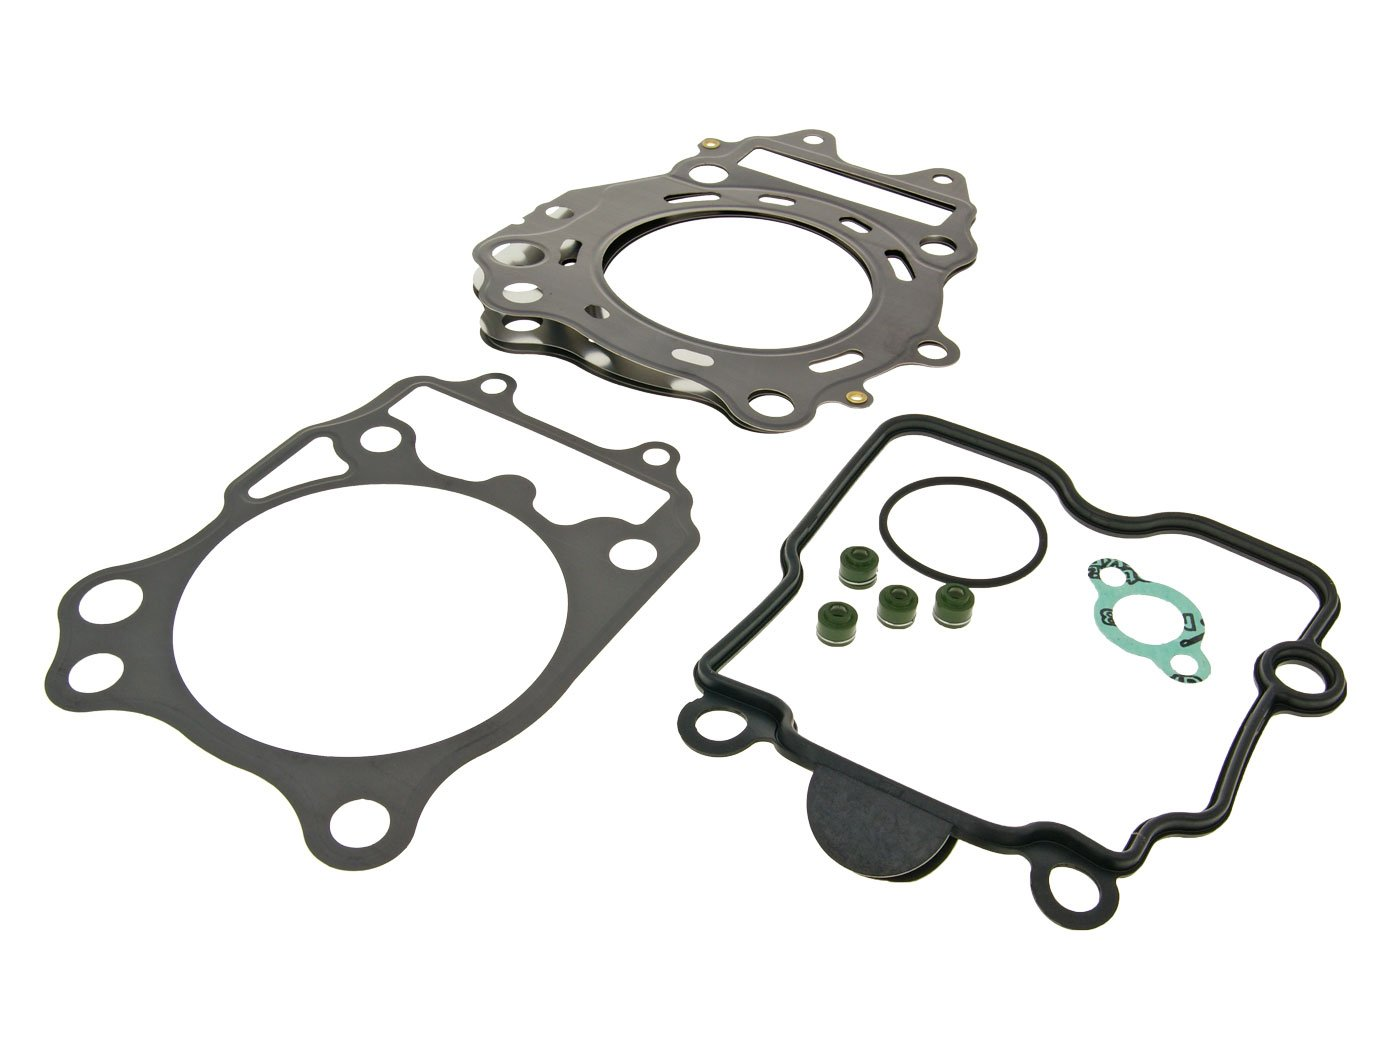 Naraku cylinder gasket set top end for Suzuki AN Burgman 400 2003-2006